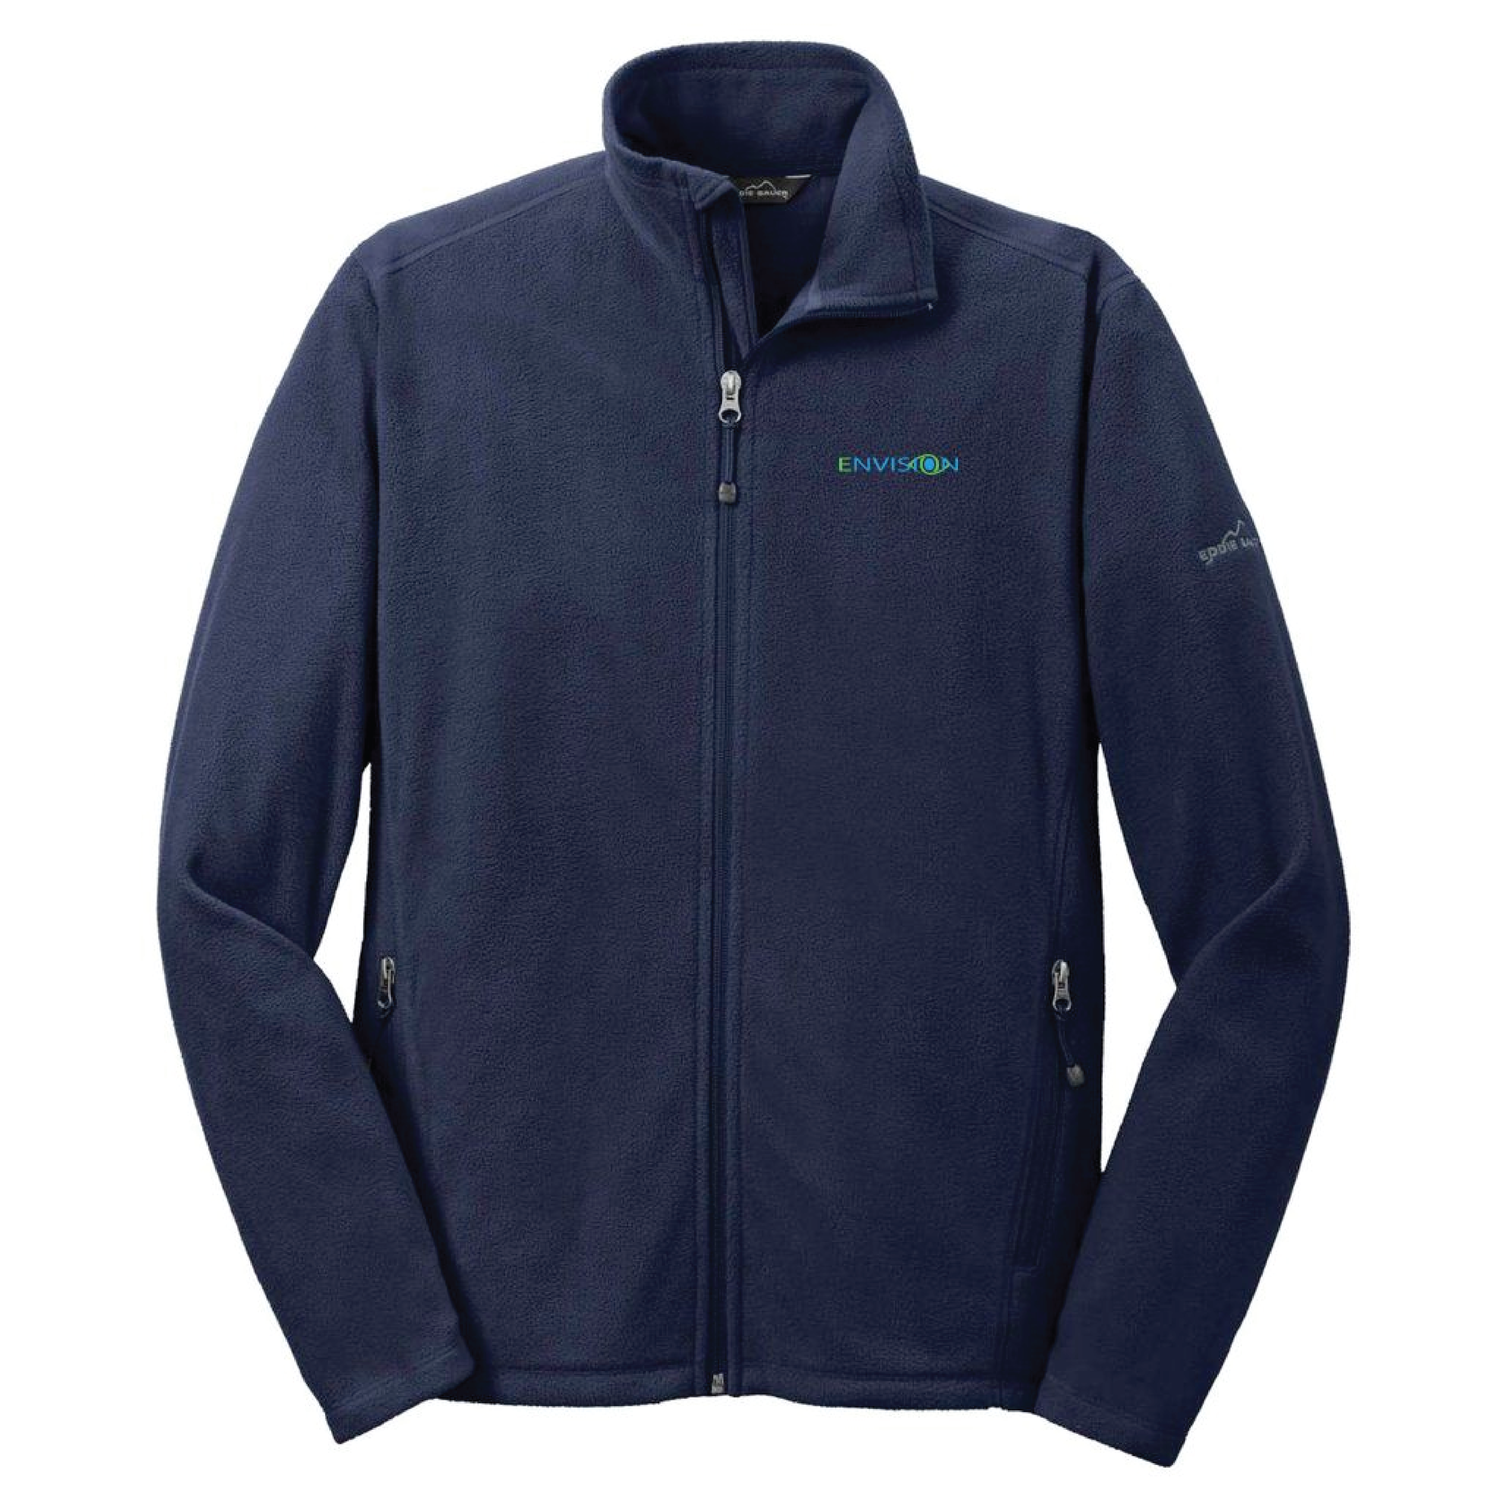 Envision Men's Microfleece Jacket: EB224 Eddie Bauer Men's Full-Zip Microfleece Jacket